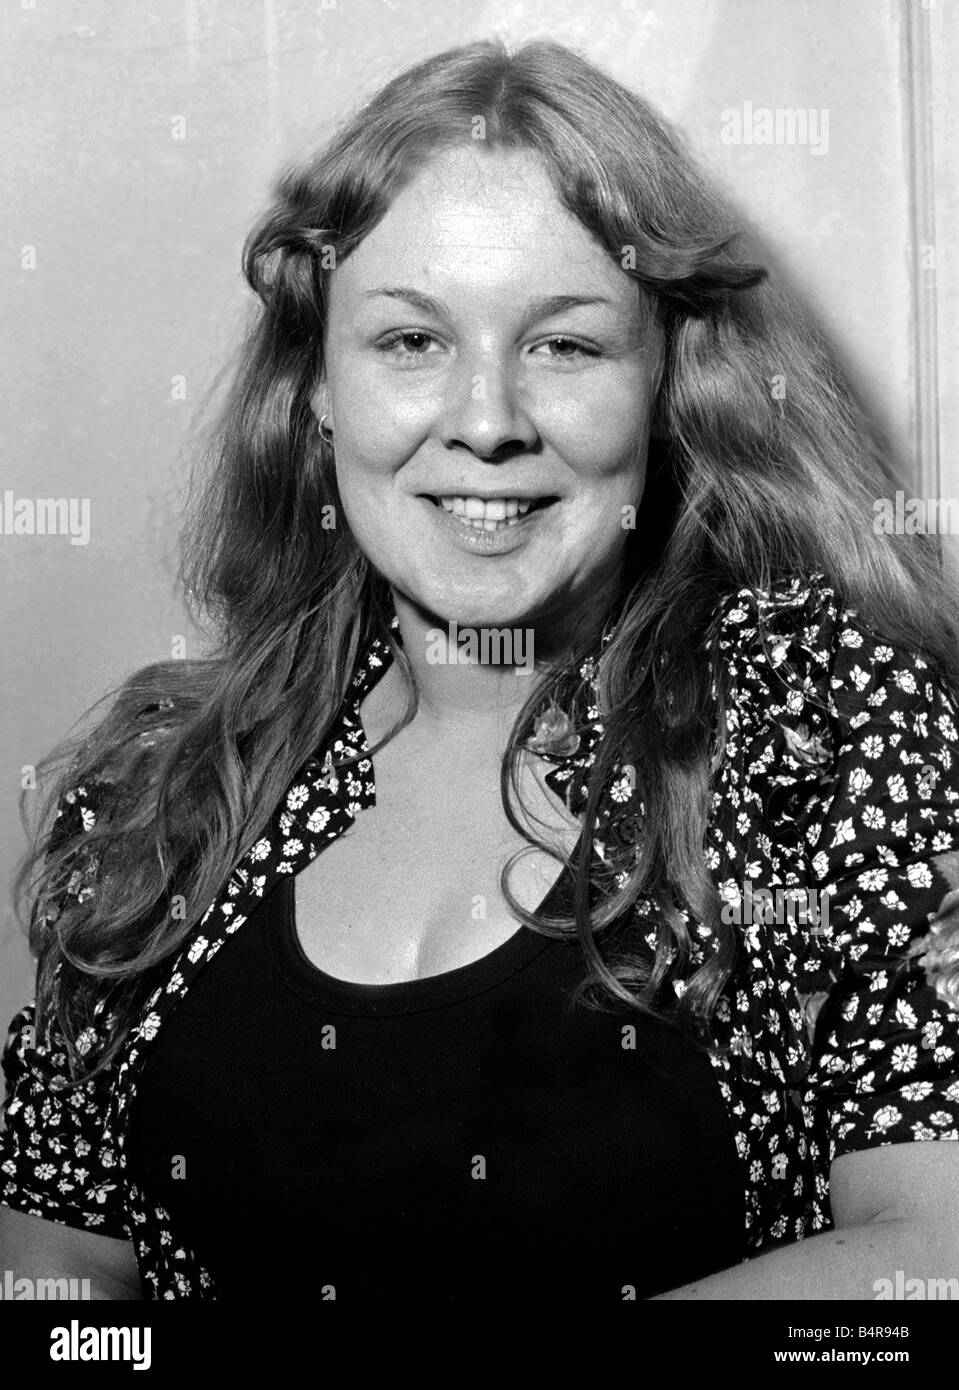 Sandy Denny The 1971 Melody Maker Pop Poll Awards The British section female singer Sandy Deeny with 457 points - Stock Image